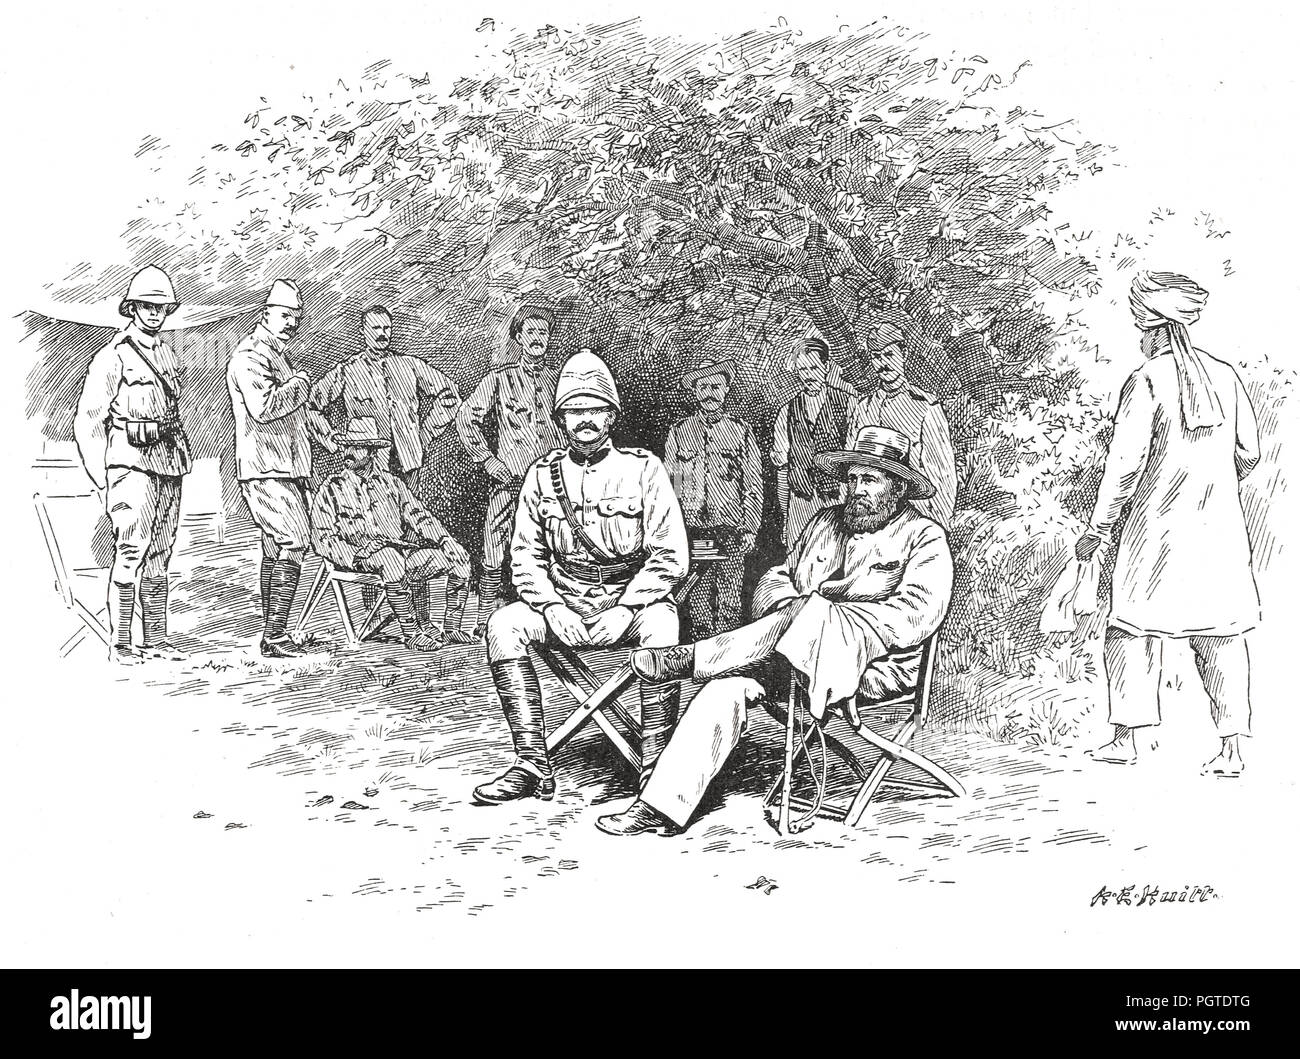 General Cronje, held prisoner after defeat at at the Battle of Paardeberg, 27 February 1900 - Stock Image